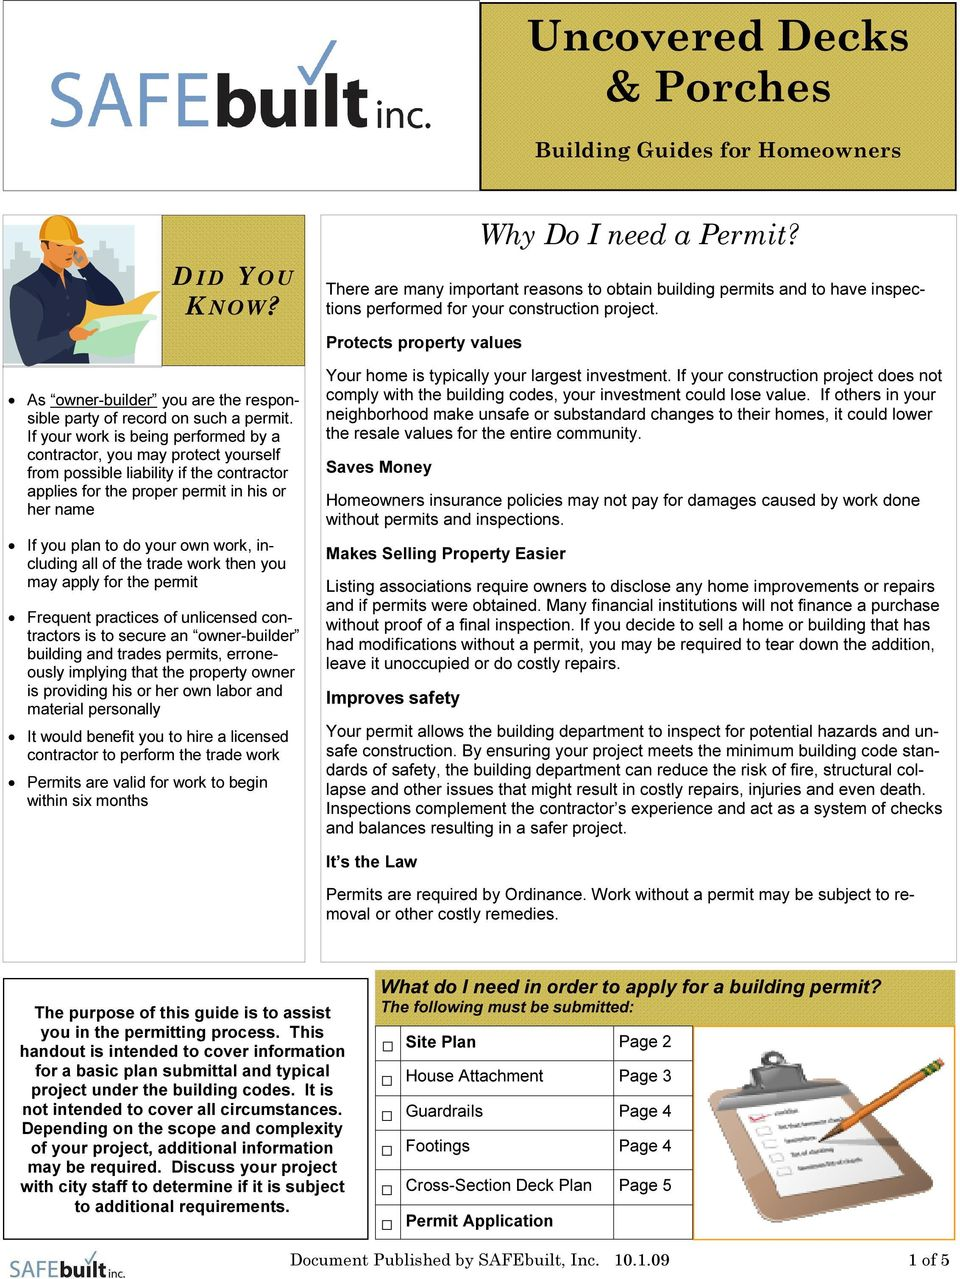 Uncovered Decks Porches Pdf Whether You Are A Homeowner Or Builder Planning Including All Of The Trade Work Then May Apply For Permit Frequent Practices